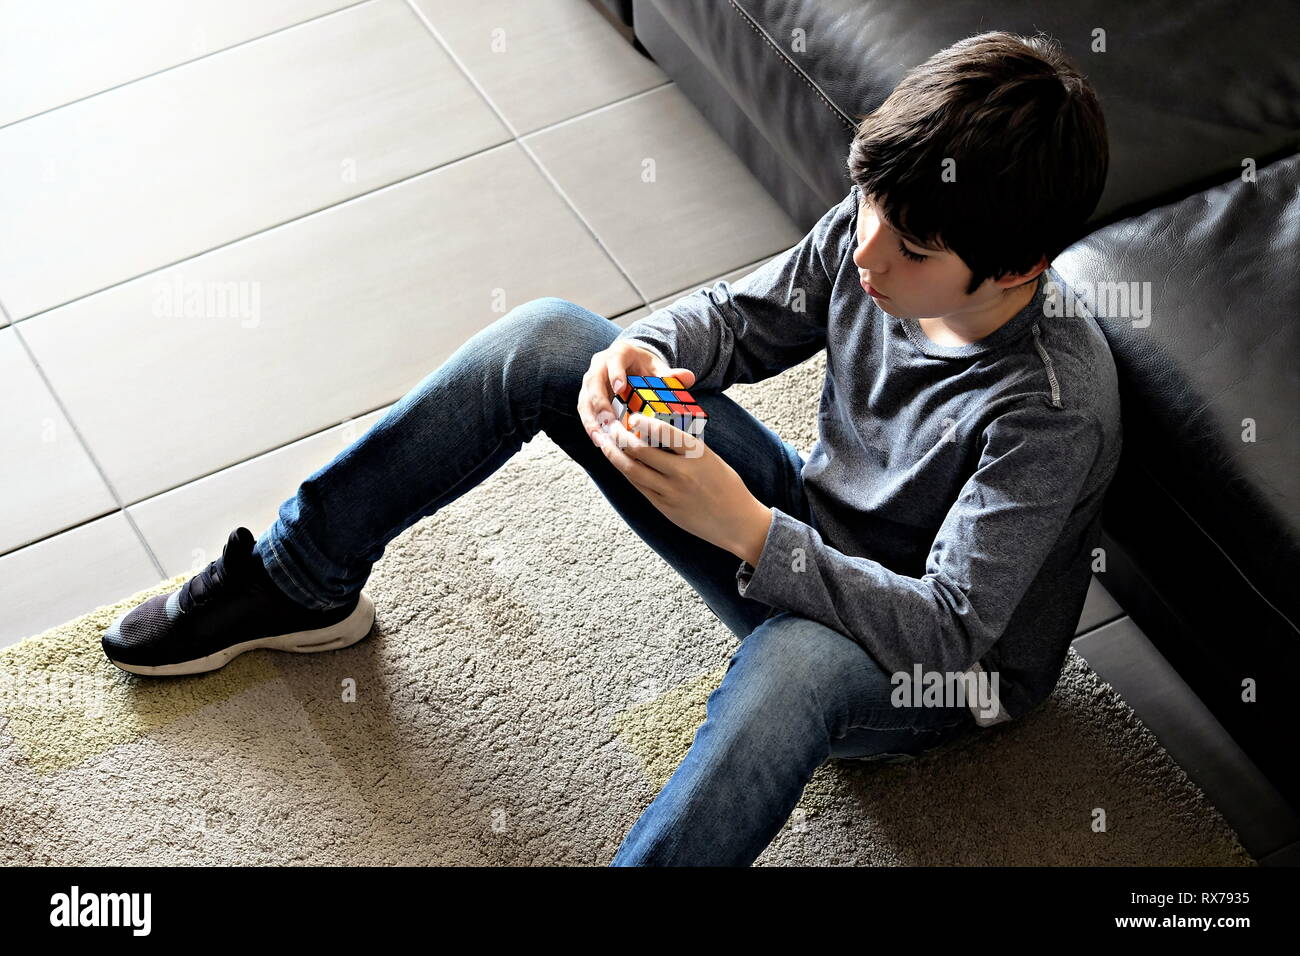 kid enjoying Rubik's cube - Stock Image